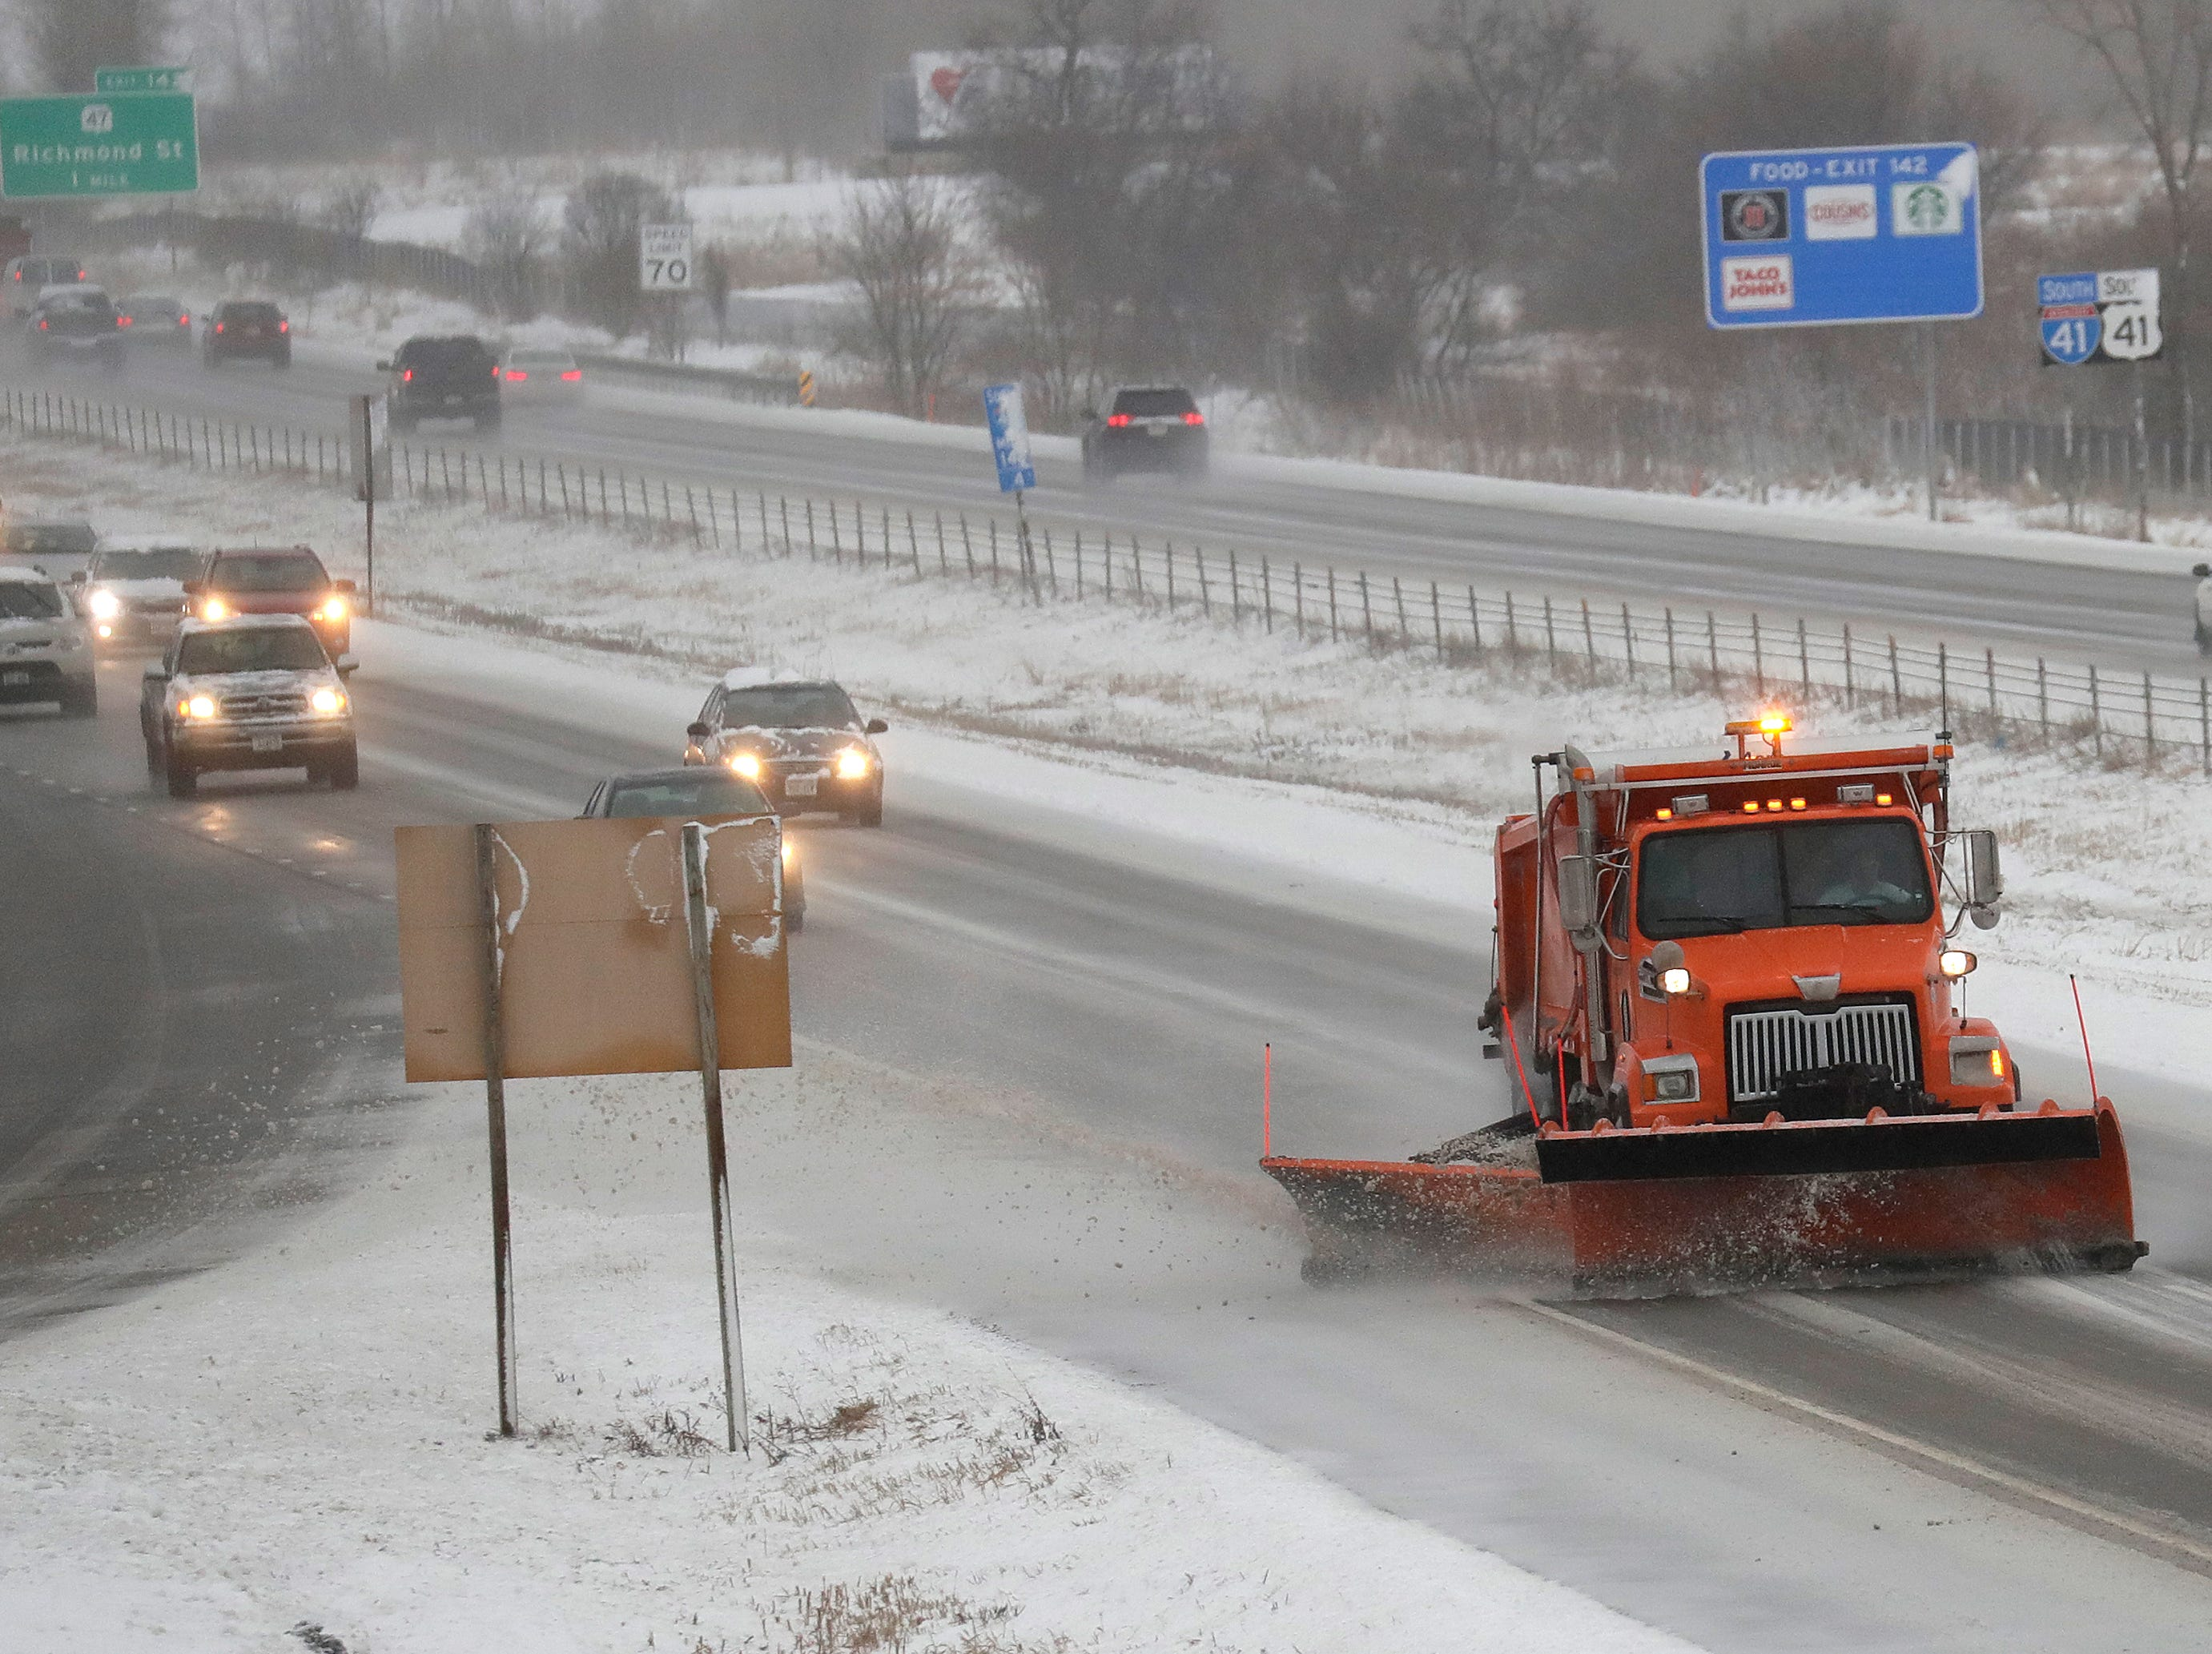 A plow clears snow for traffic traveling northbound on I-41 during a spring snow storm Thursday, April 11, 2019, in Appleton, Wis. Dan Powers/USA TODAY NETWORK-Wisconsin